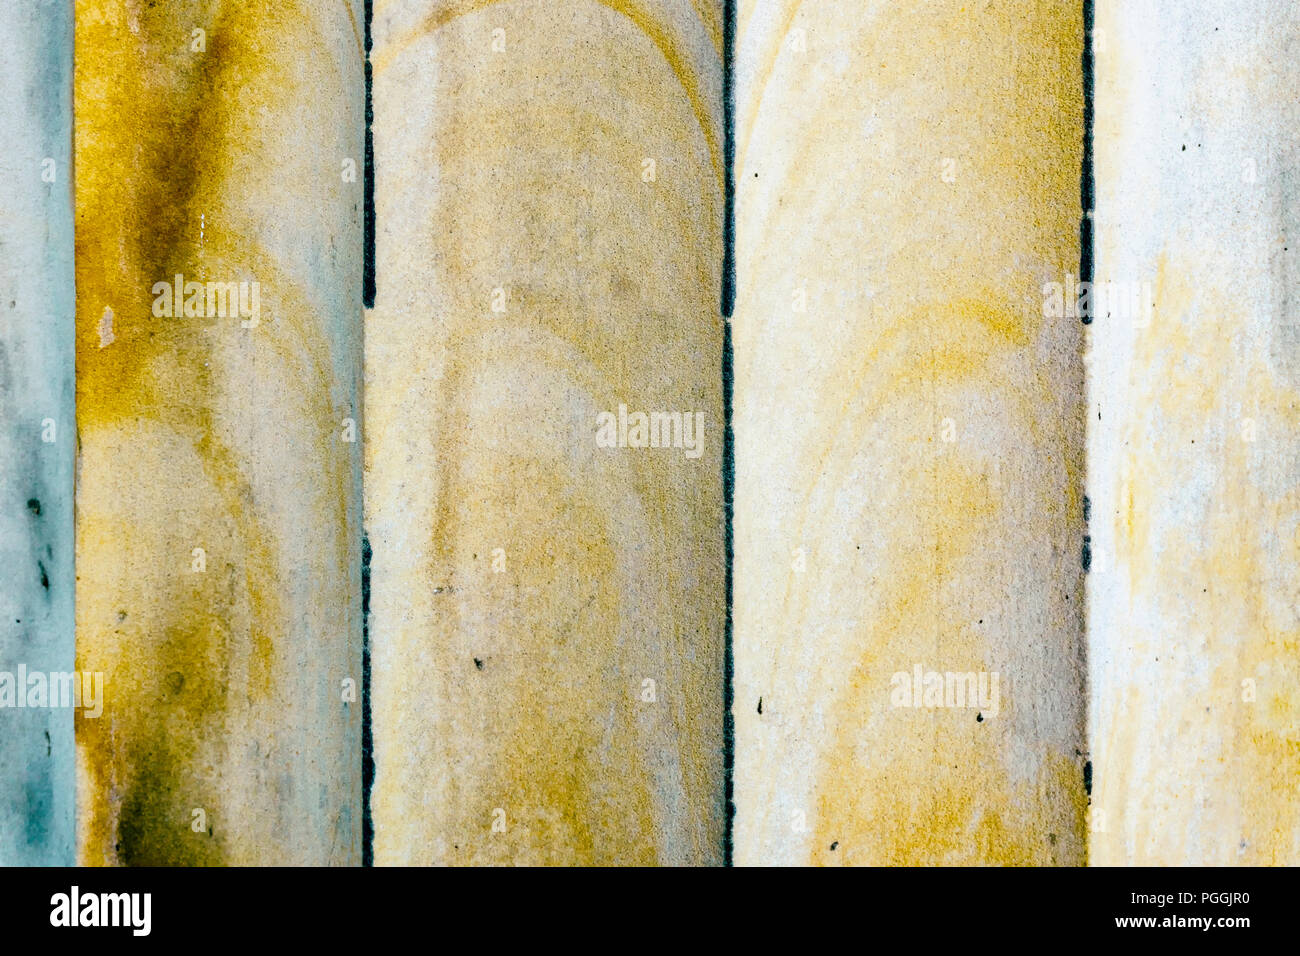 Berlin, Germany, August 11, 2018: Full Frame Close-Up of Column Grooves - Stock Image